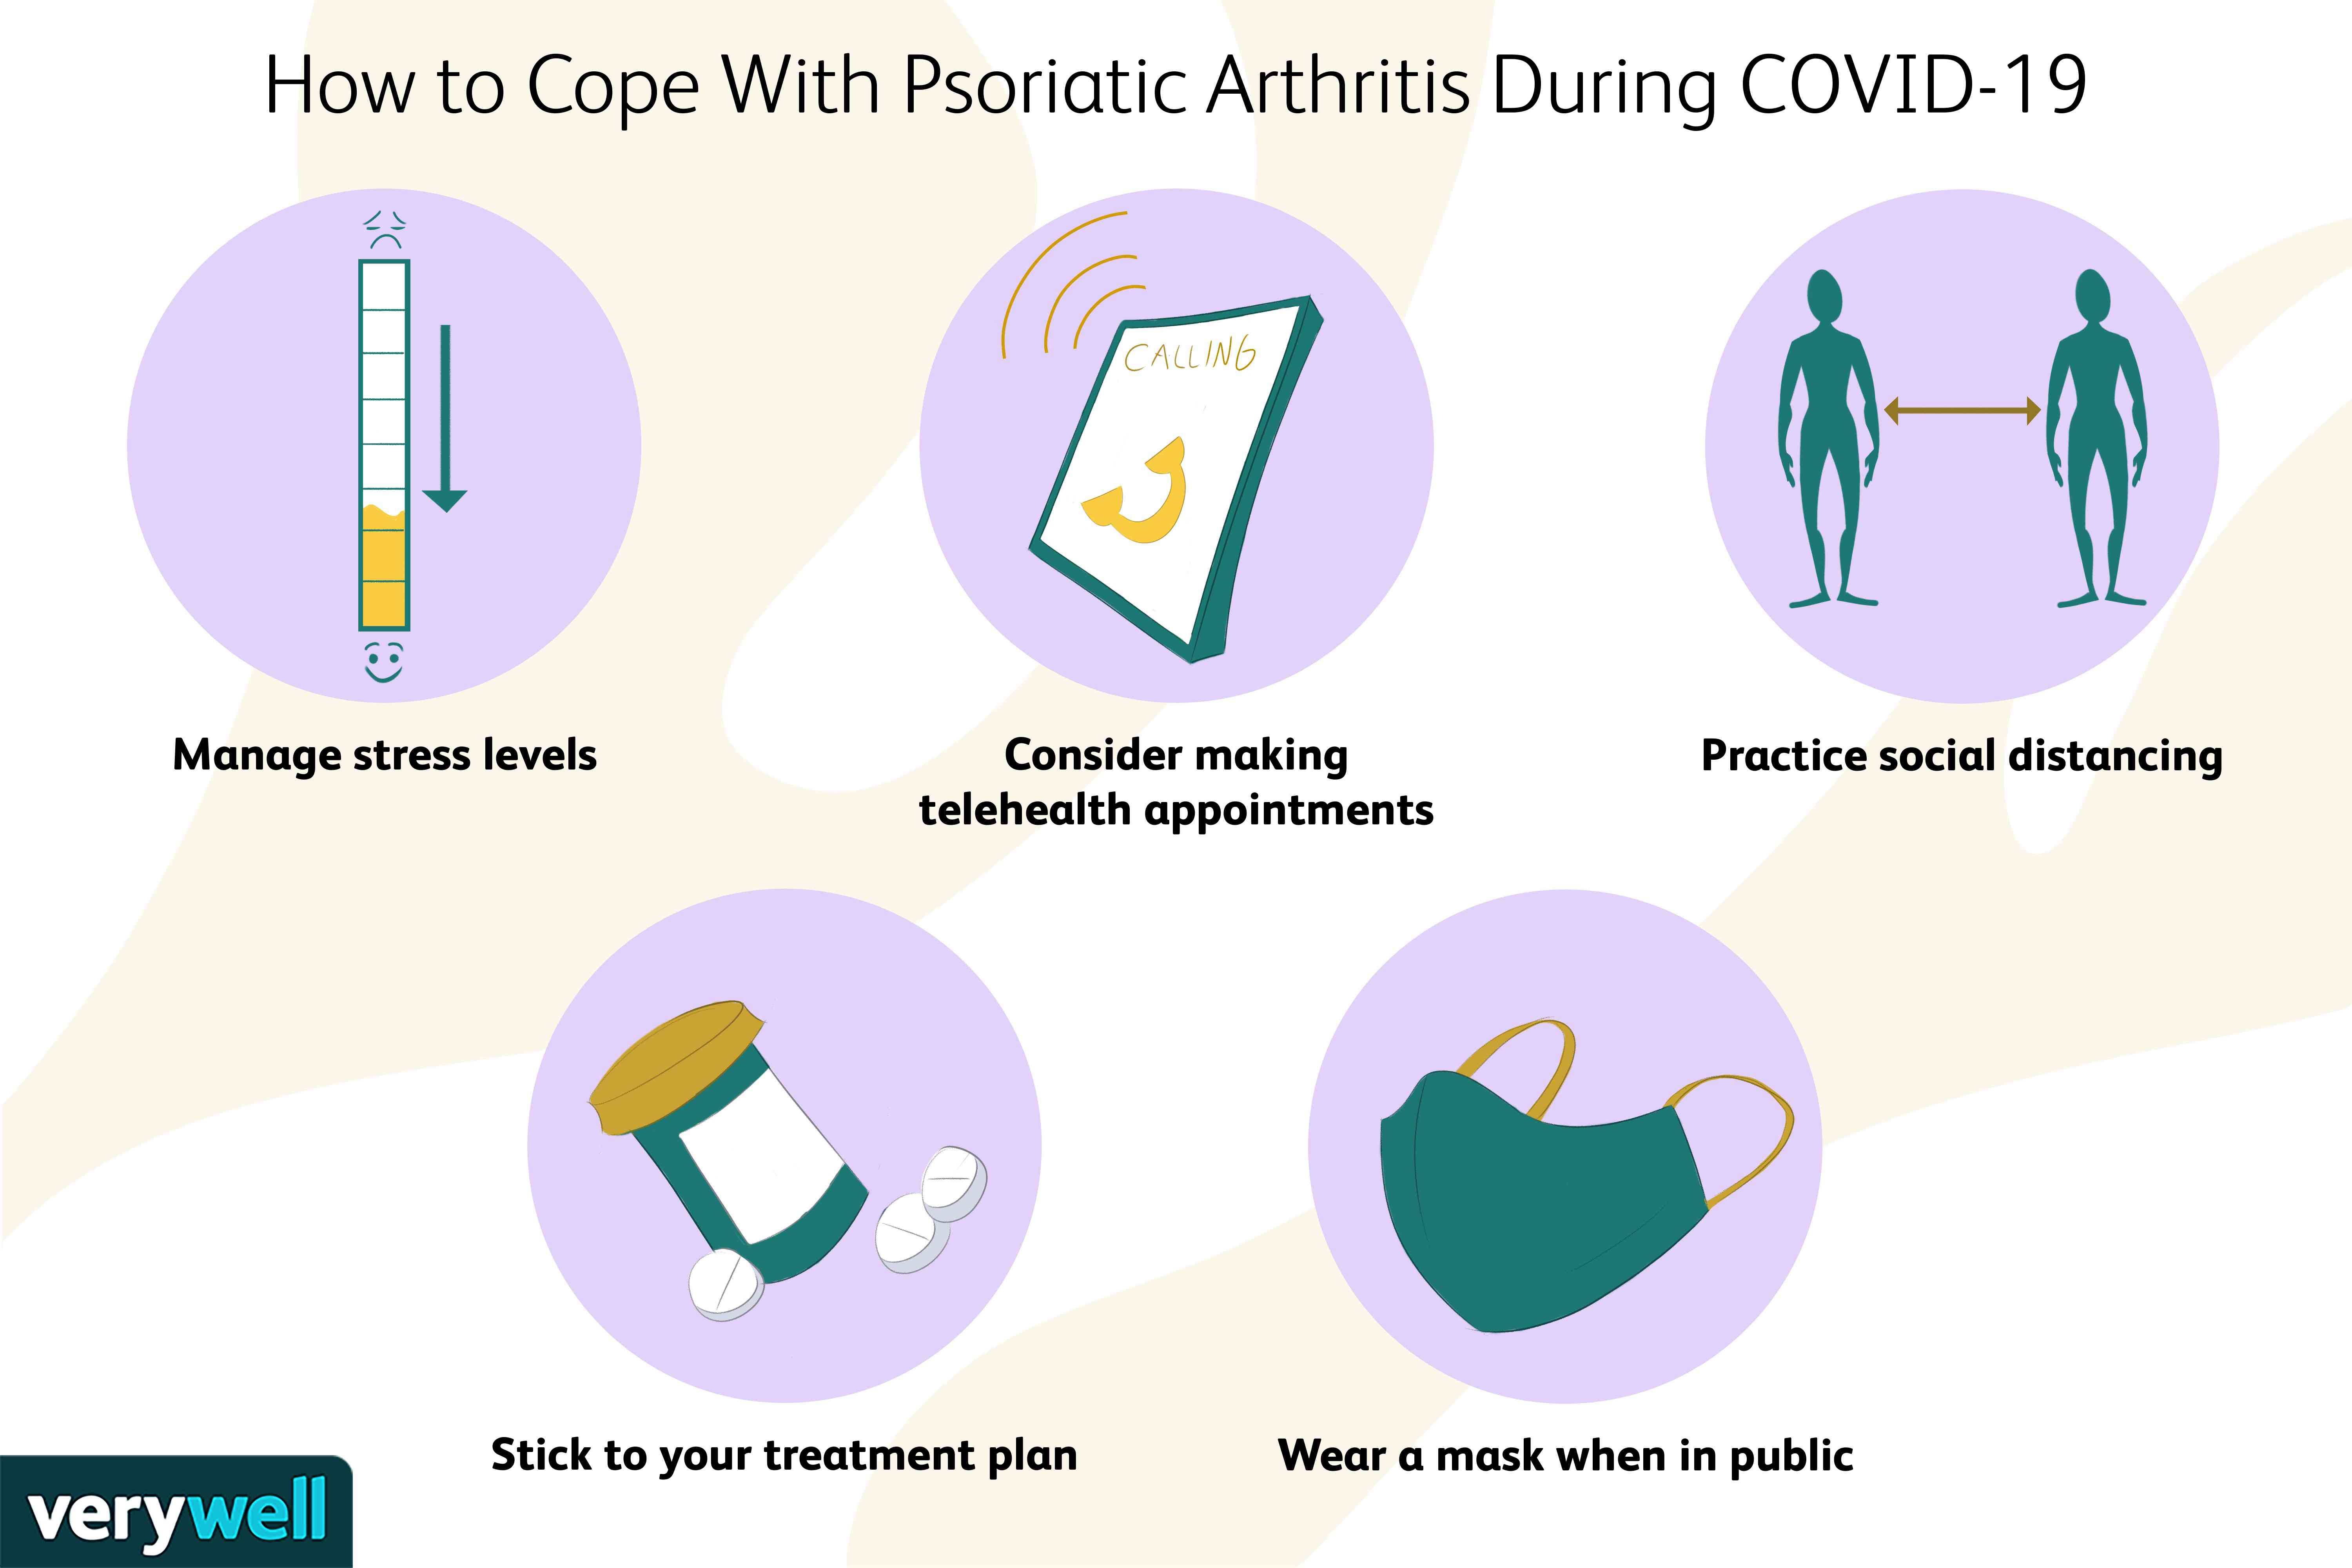 how to cope with psoriatic arthritis during covid19